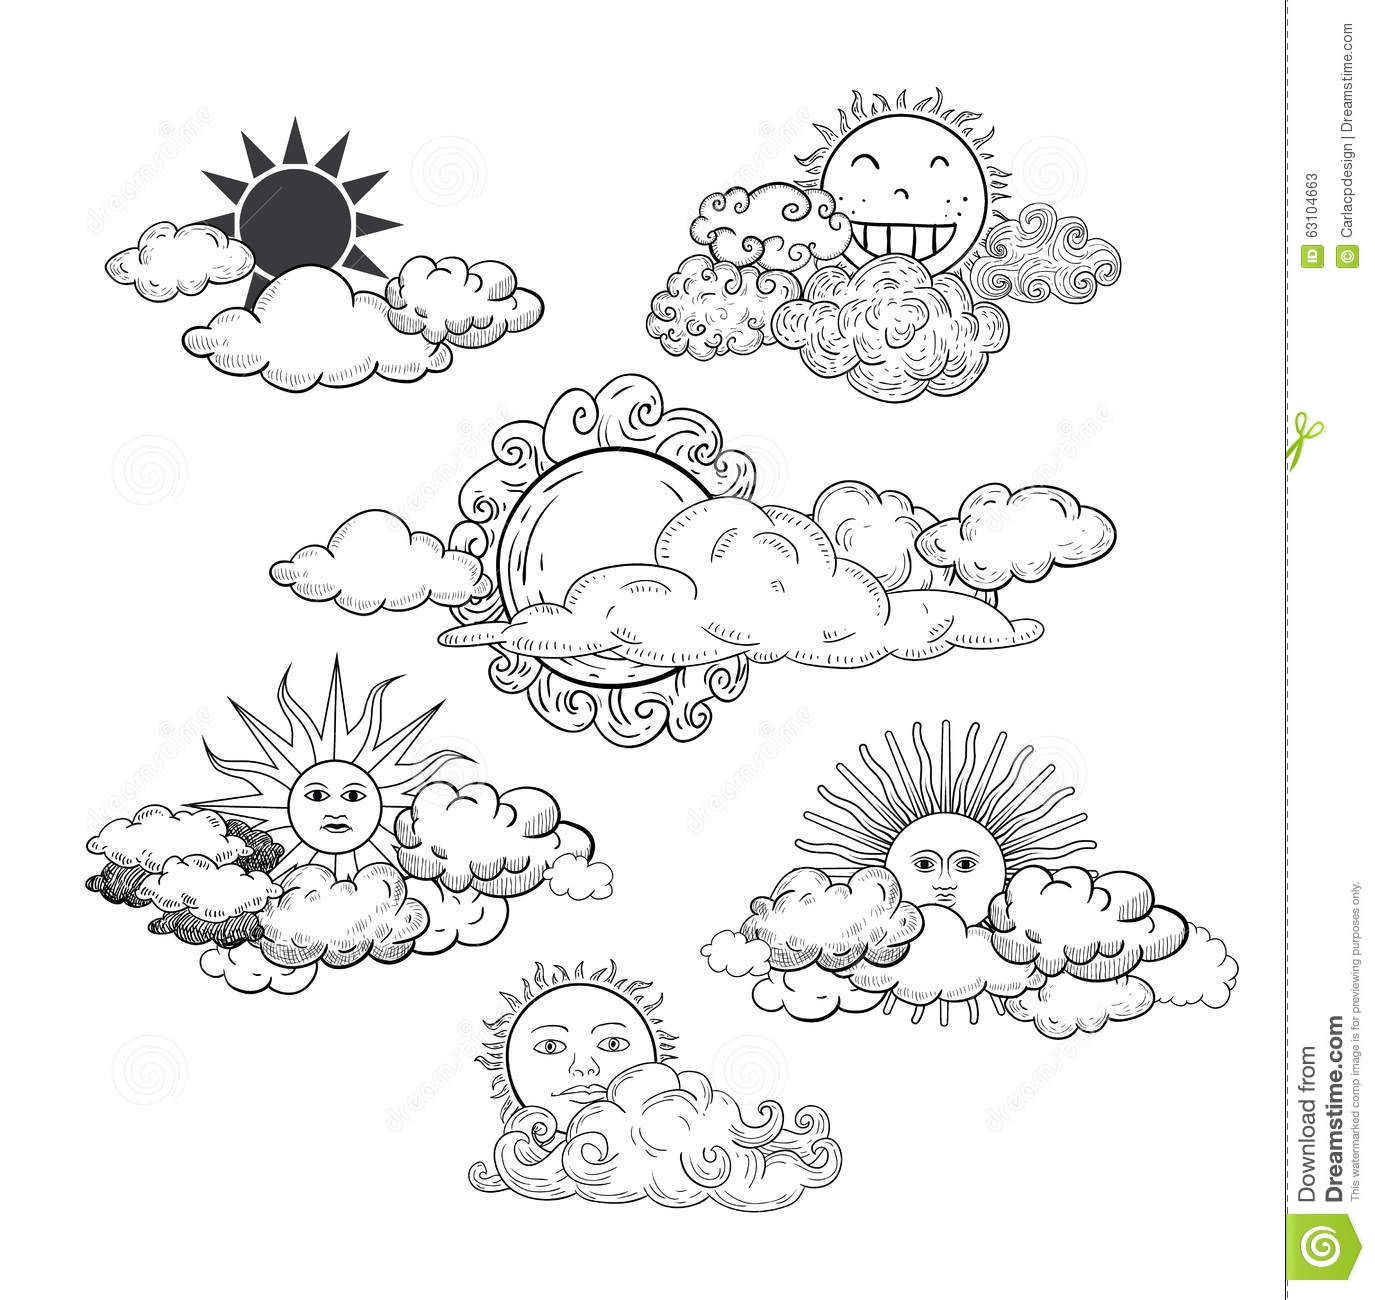 Illustration About Sun With Clouds Doodle Hand Drawn Collection Illustration Of Rain Cloud Object 63104663 Cloud Tattoo Cloud Drawing Sun Doodles